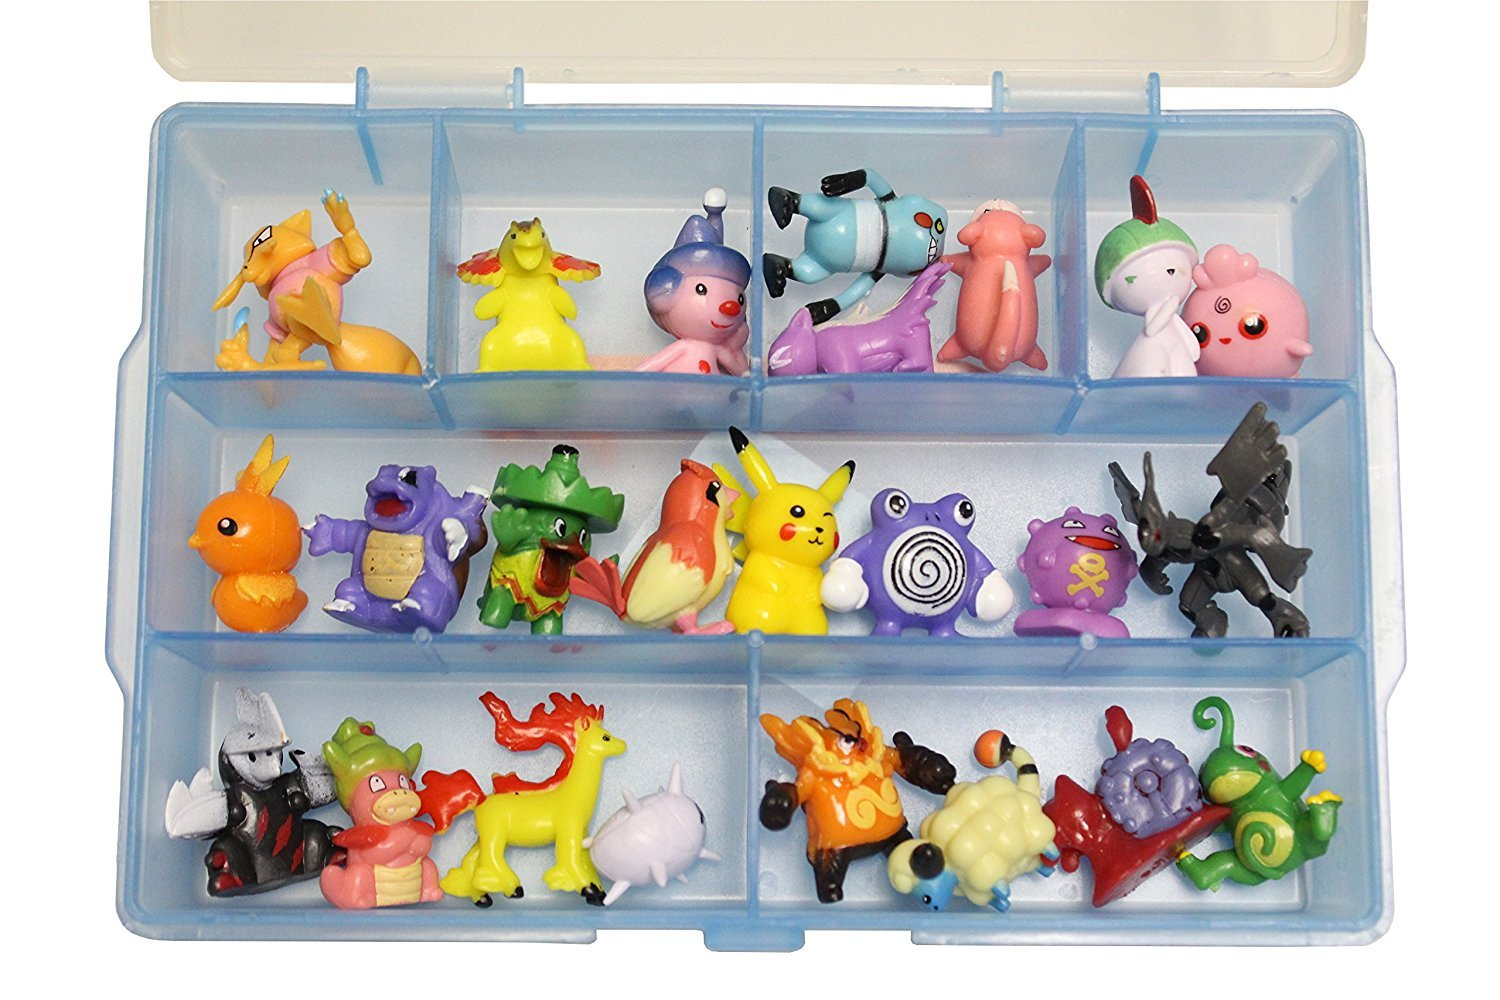 24 Piece Rubberized Pokemon Action Figure Set - Random Assortment from All Pokemon Generation with Organizer Box generic